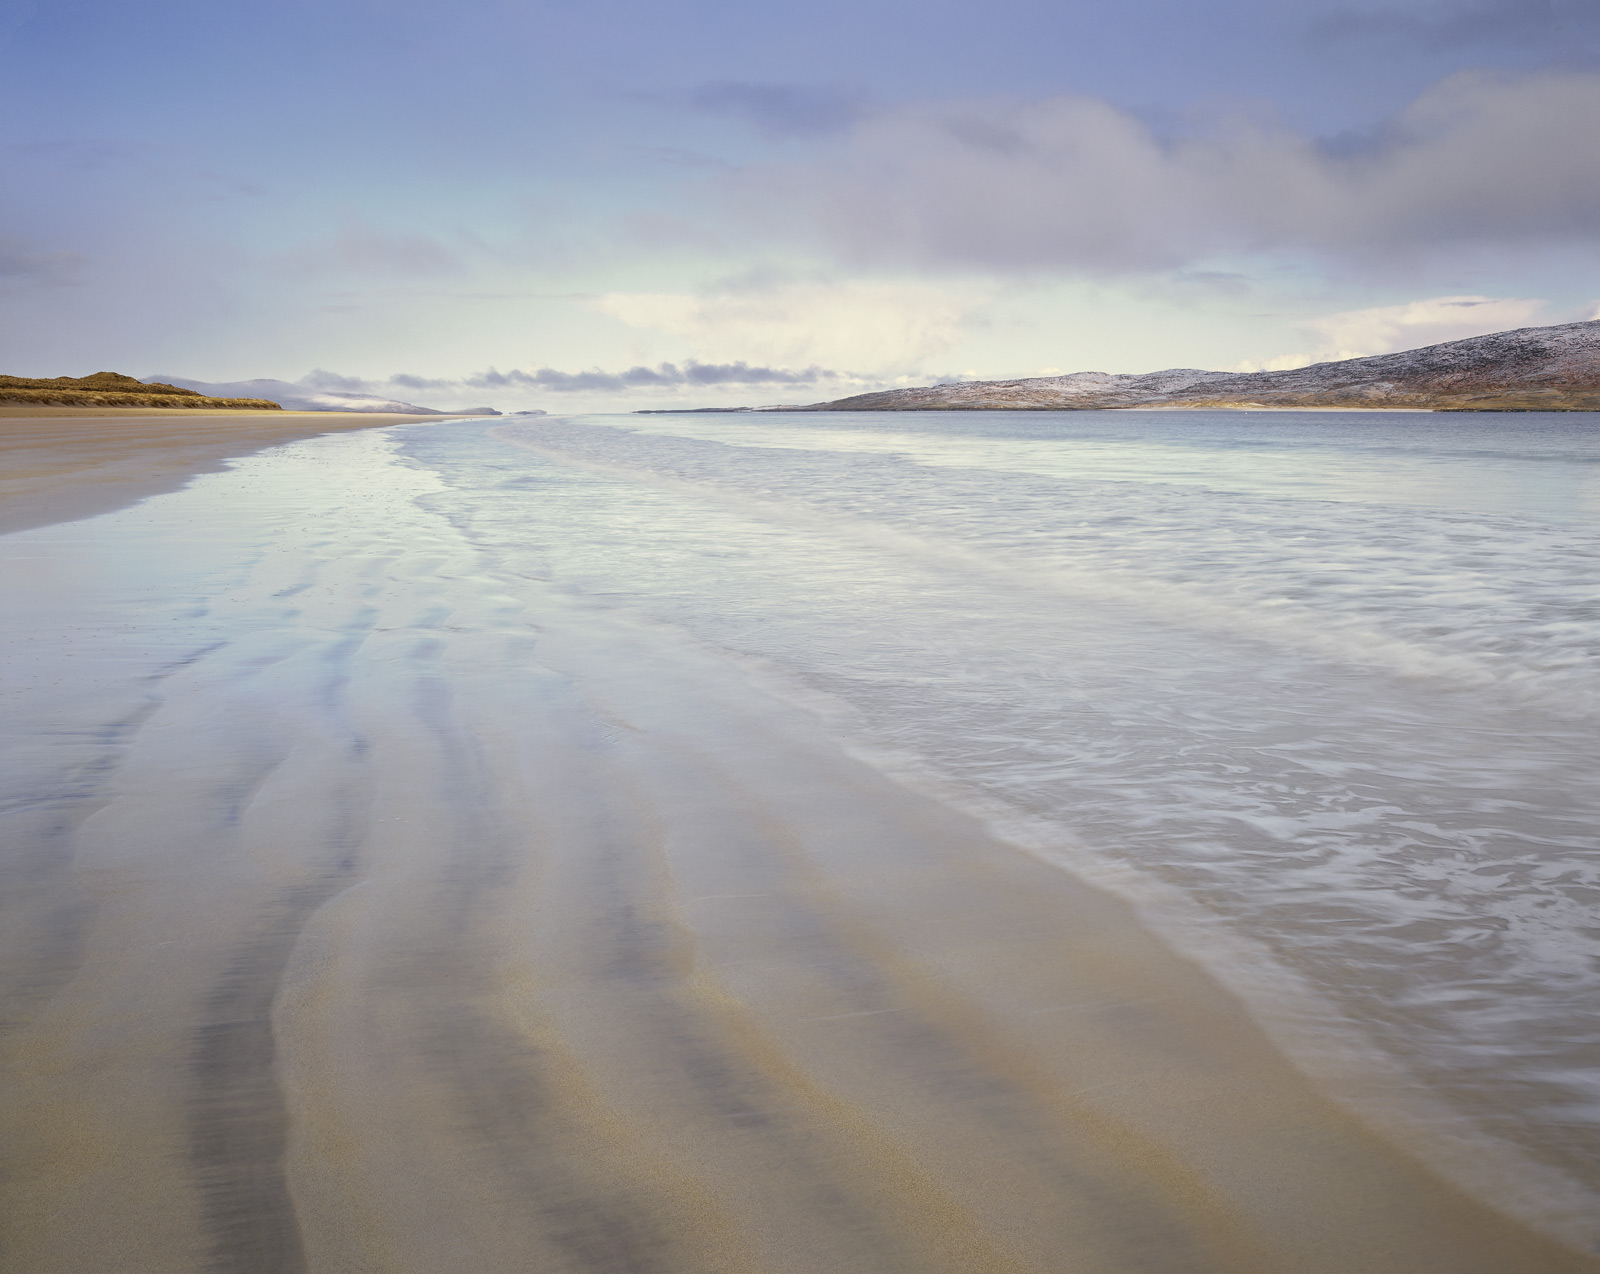 One of the many perfect stretches of beach that the Isle of Harris can be so proud of.  I tried a few shots looking right...